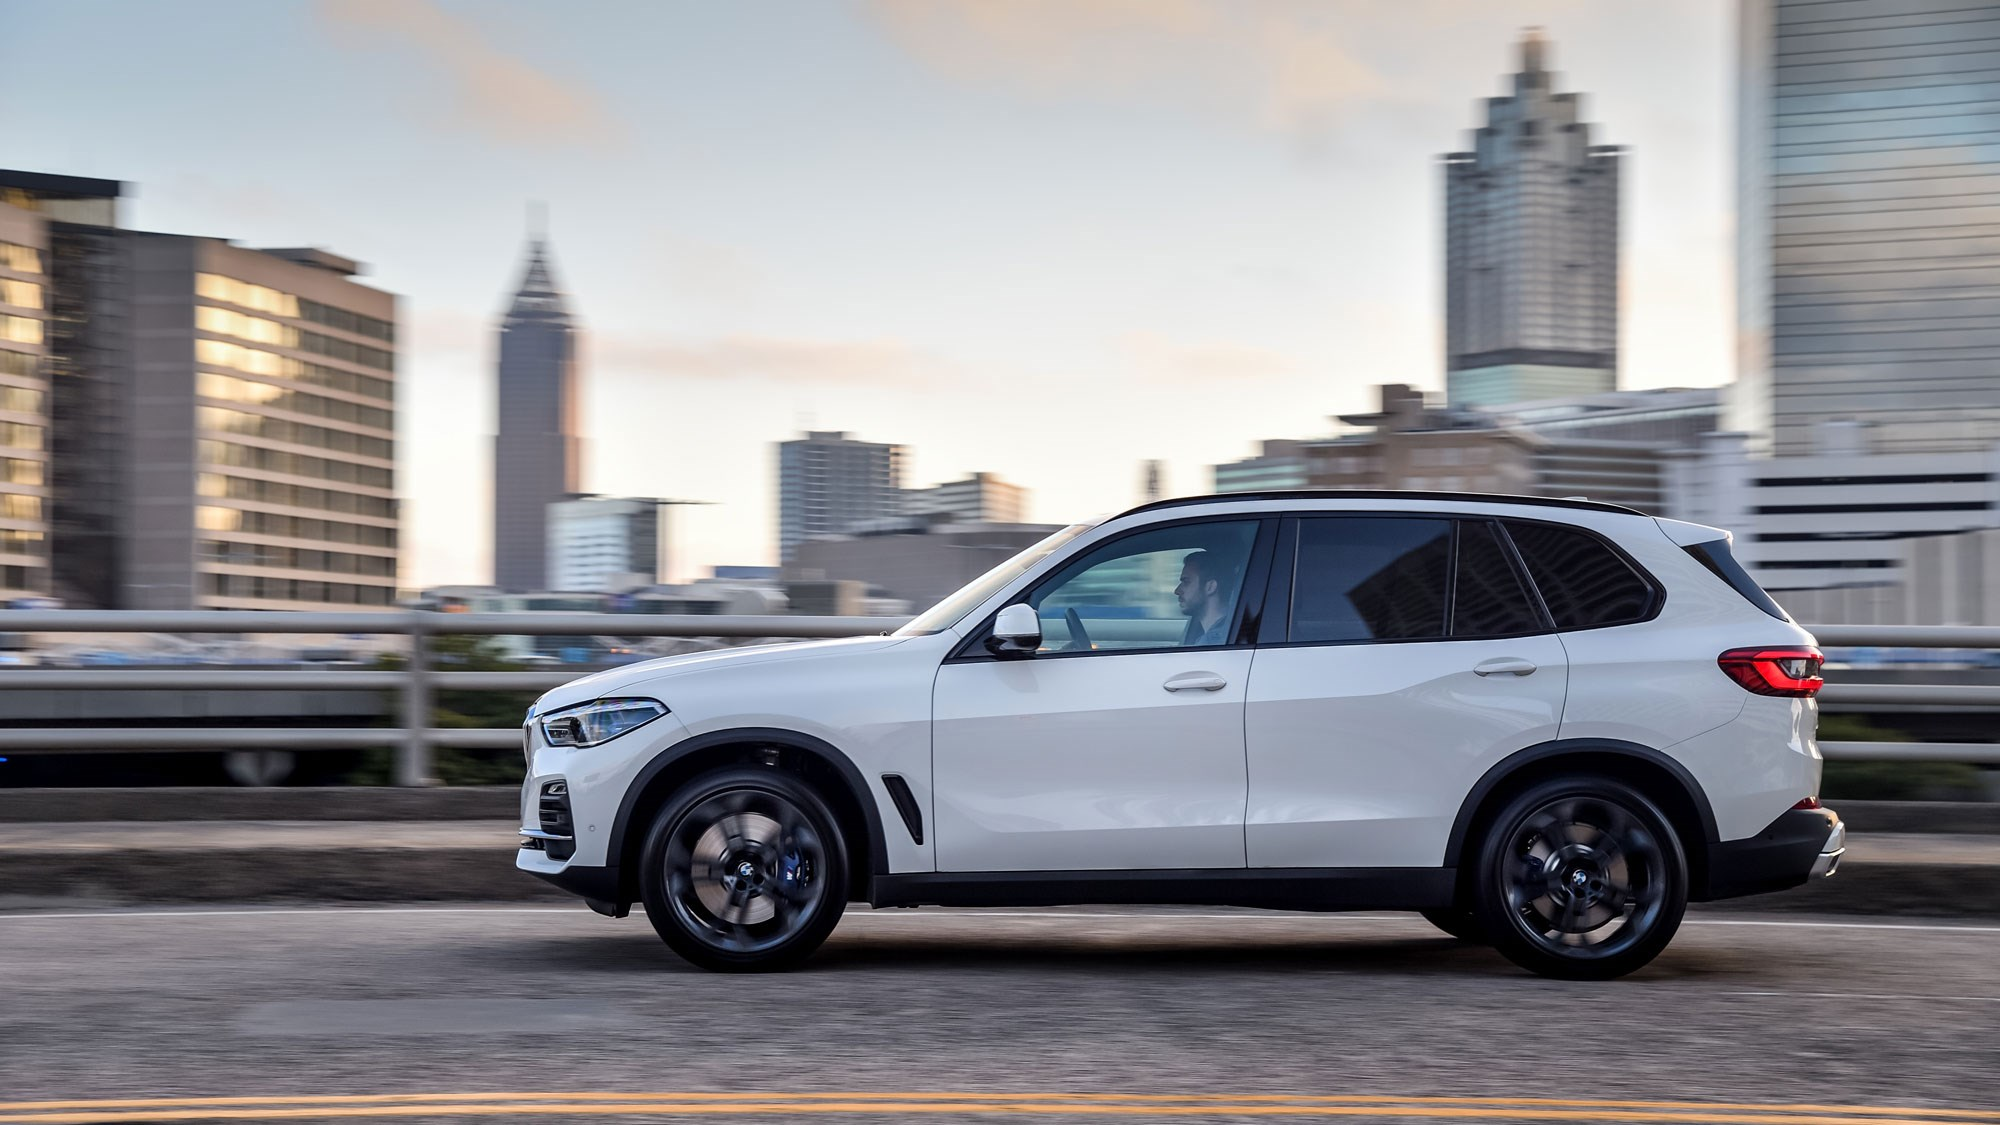 New Bmw X5 2018 Review A Tech Luxury And Handling Upgrade Car